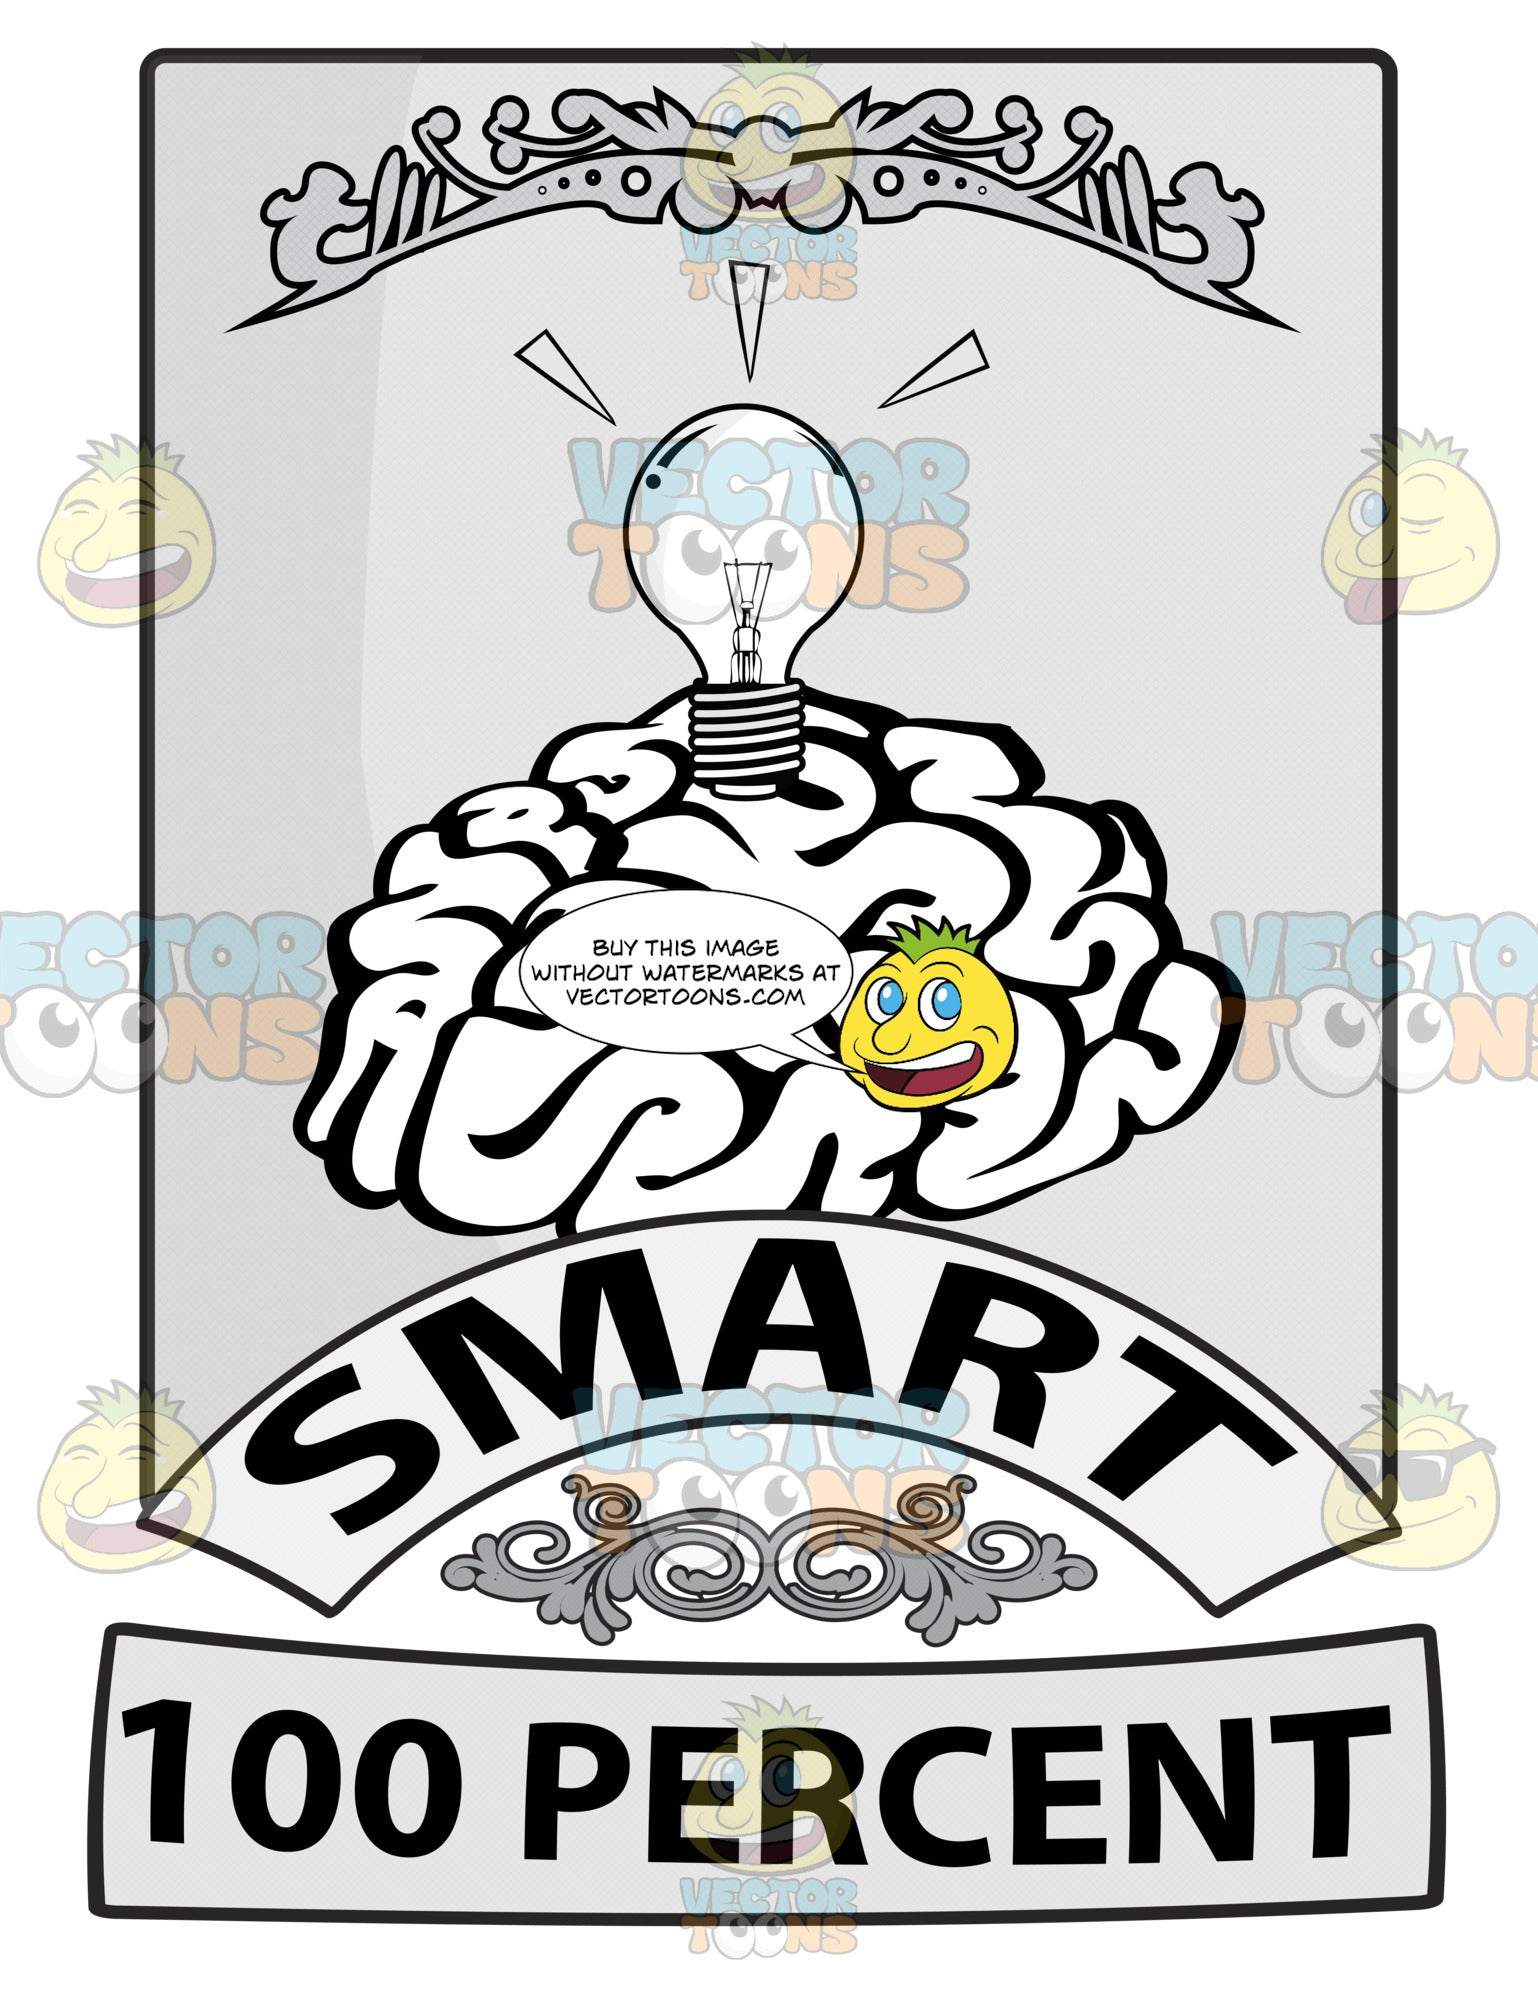 Seal With Human Brain With Light Bulb Above, Banners With Word Smart And 100 Percent Beneath With Ornate Florishes